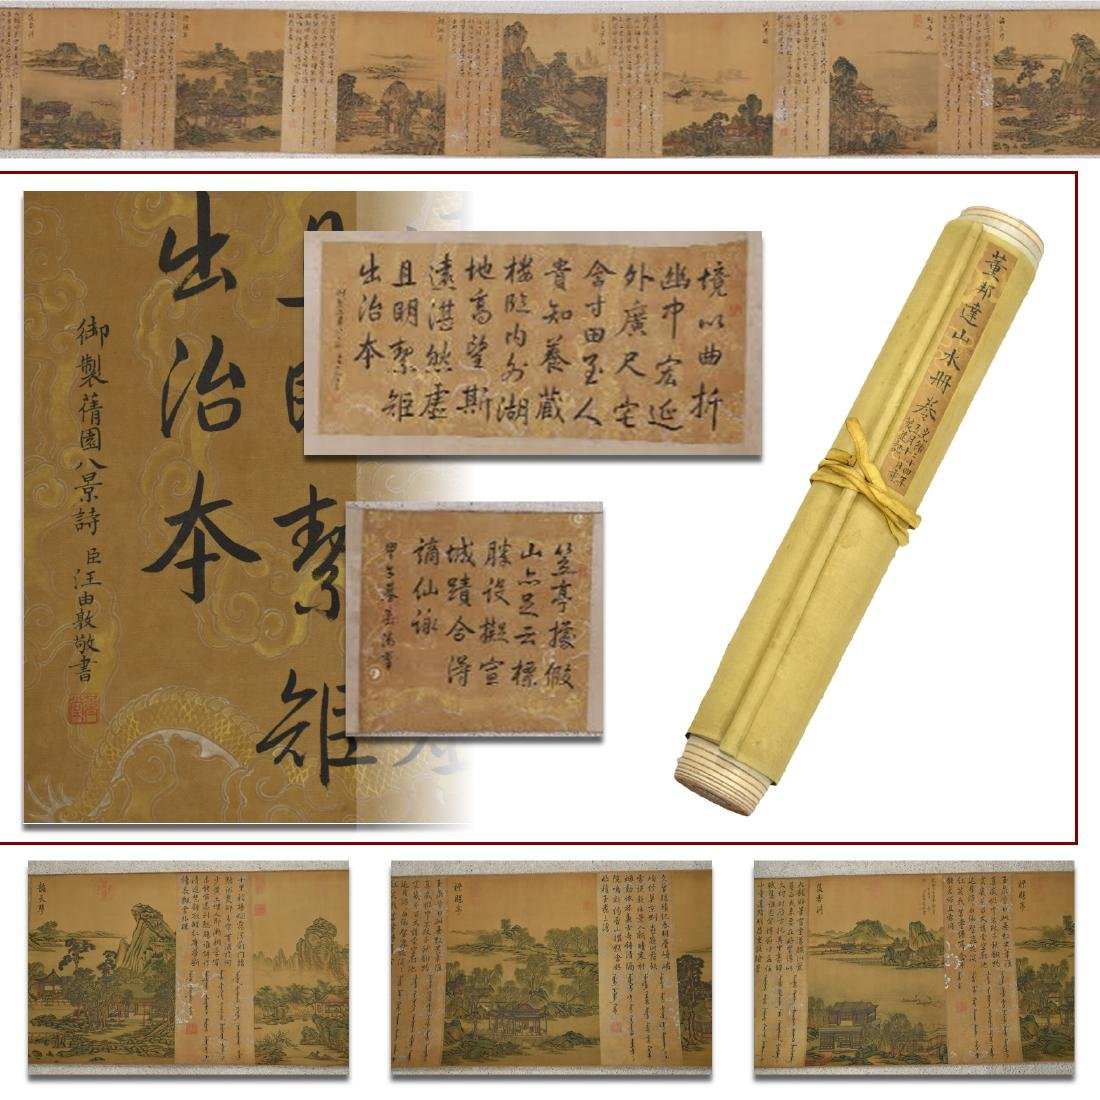 CHINESE ARCHITECTURAL & LANDCAPE LONG HAND SCROLL